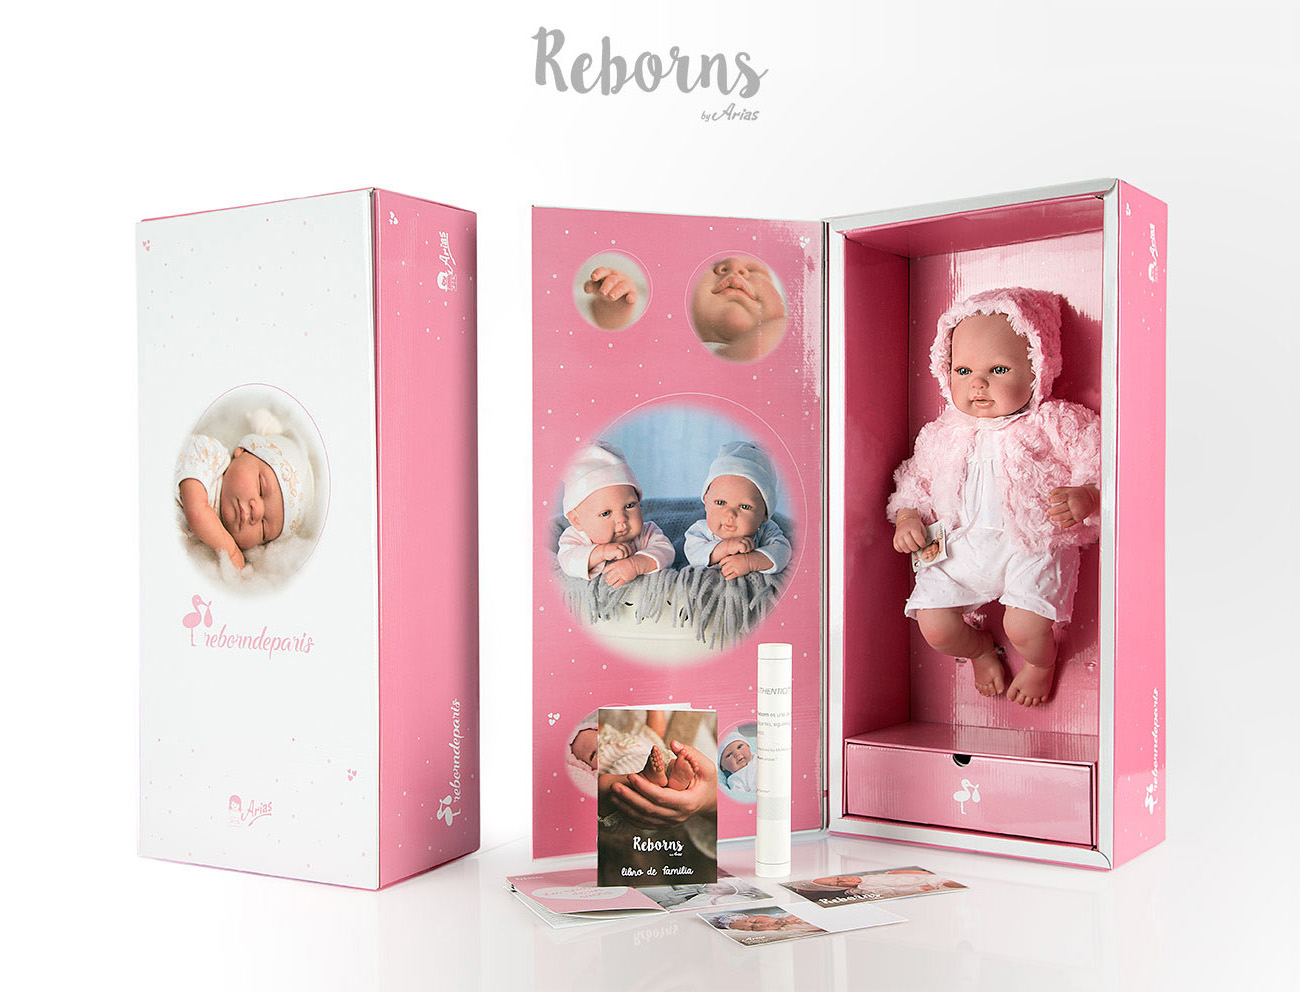 ugedafita-arias-packaging-reborns